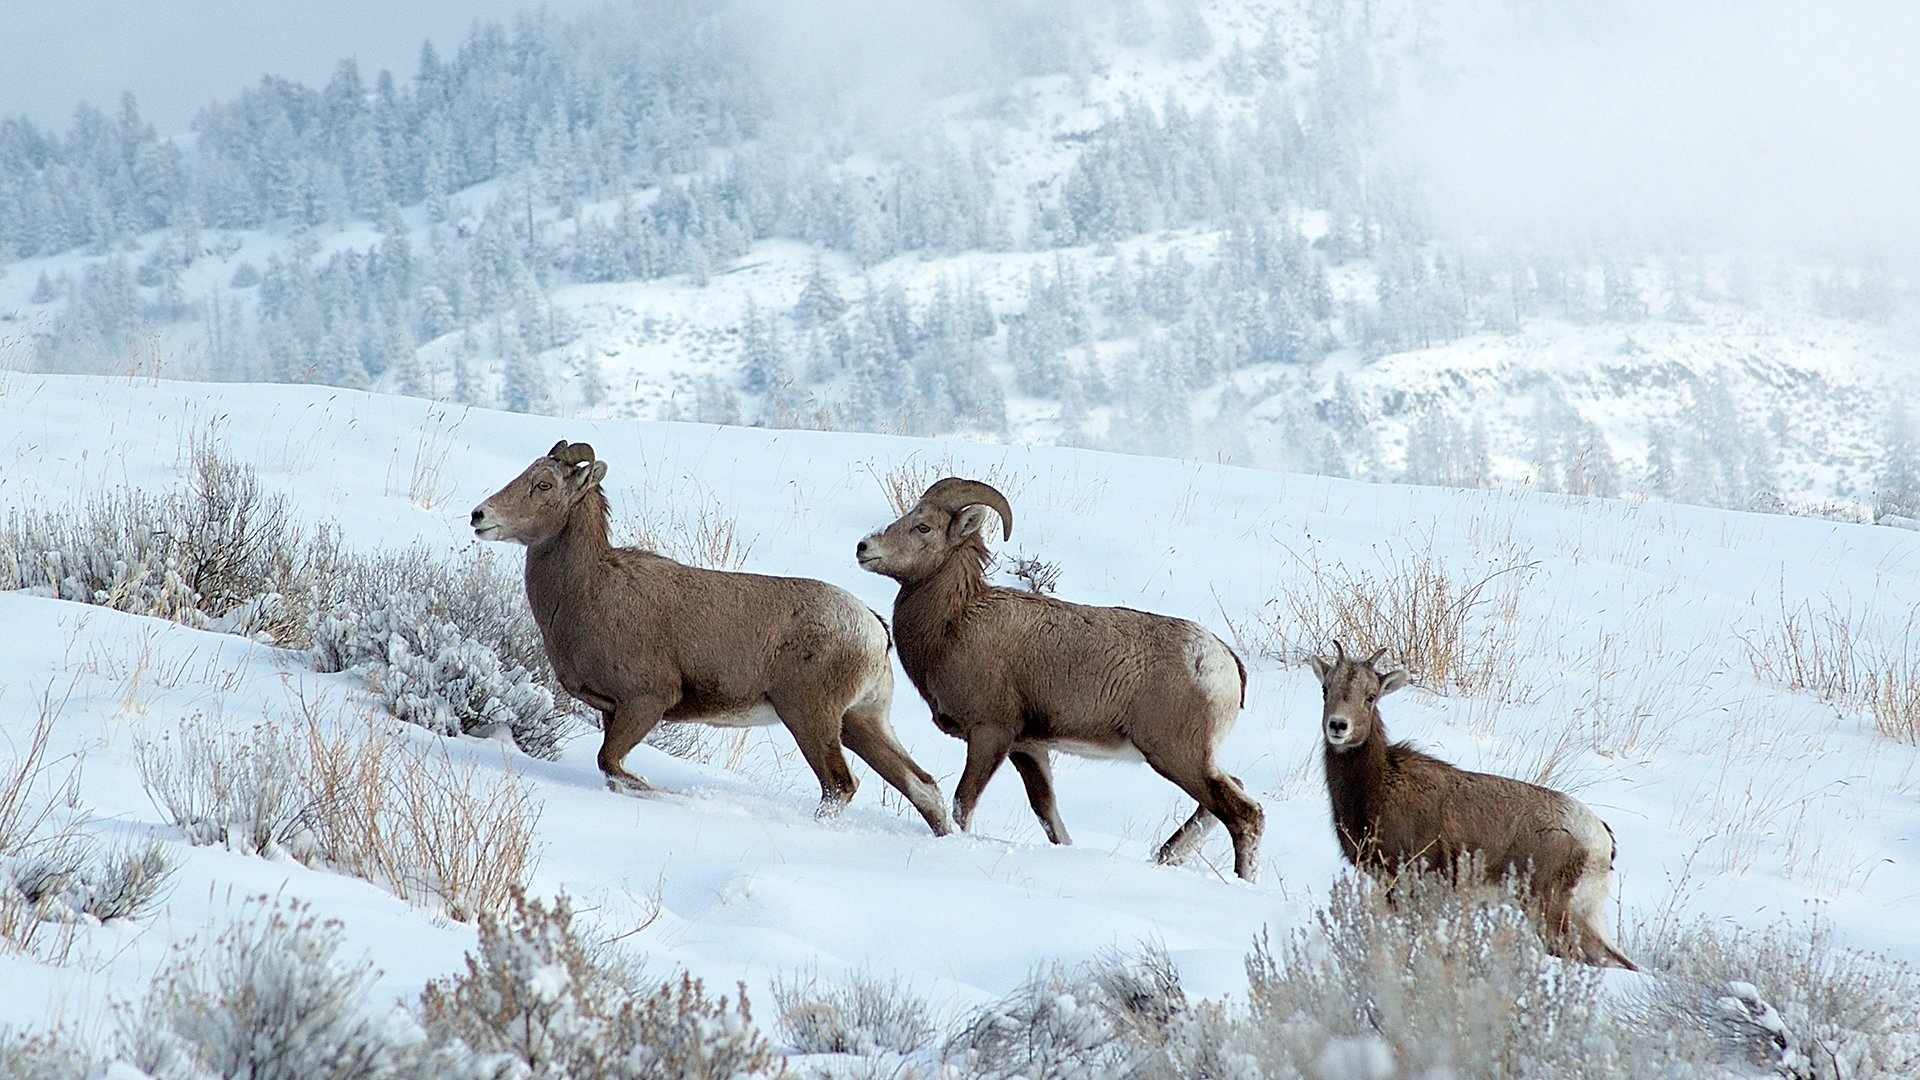 https://0901.nccdn.net/4_2/000/000/038/2d3/Mountain-Sheep.jpg